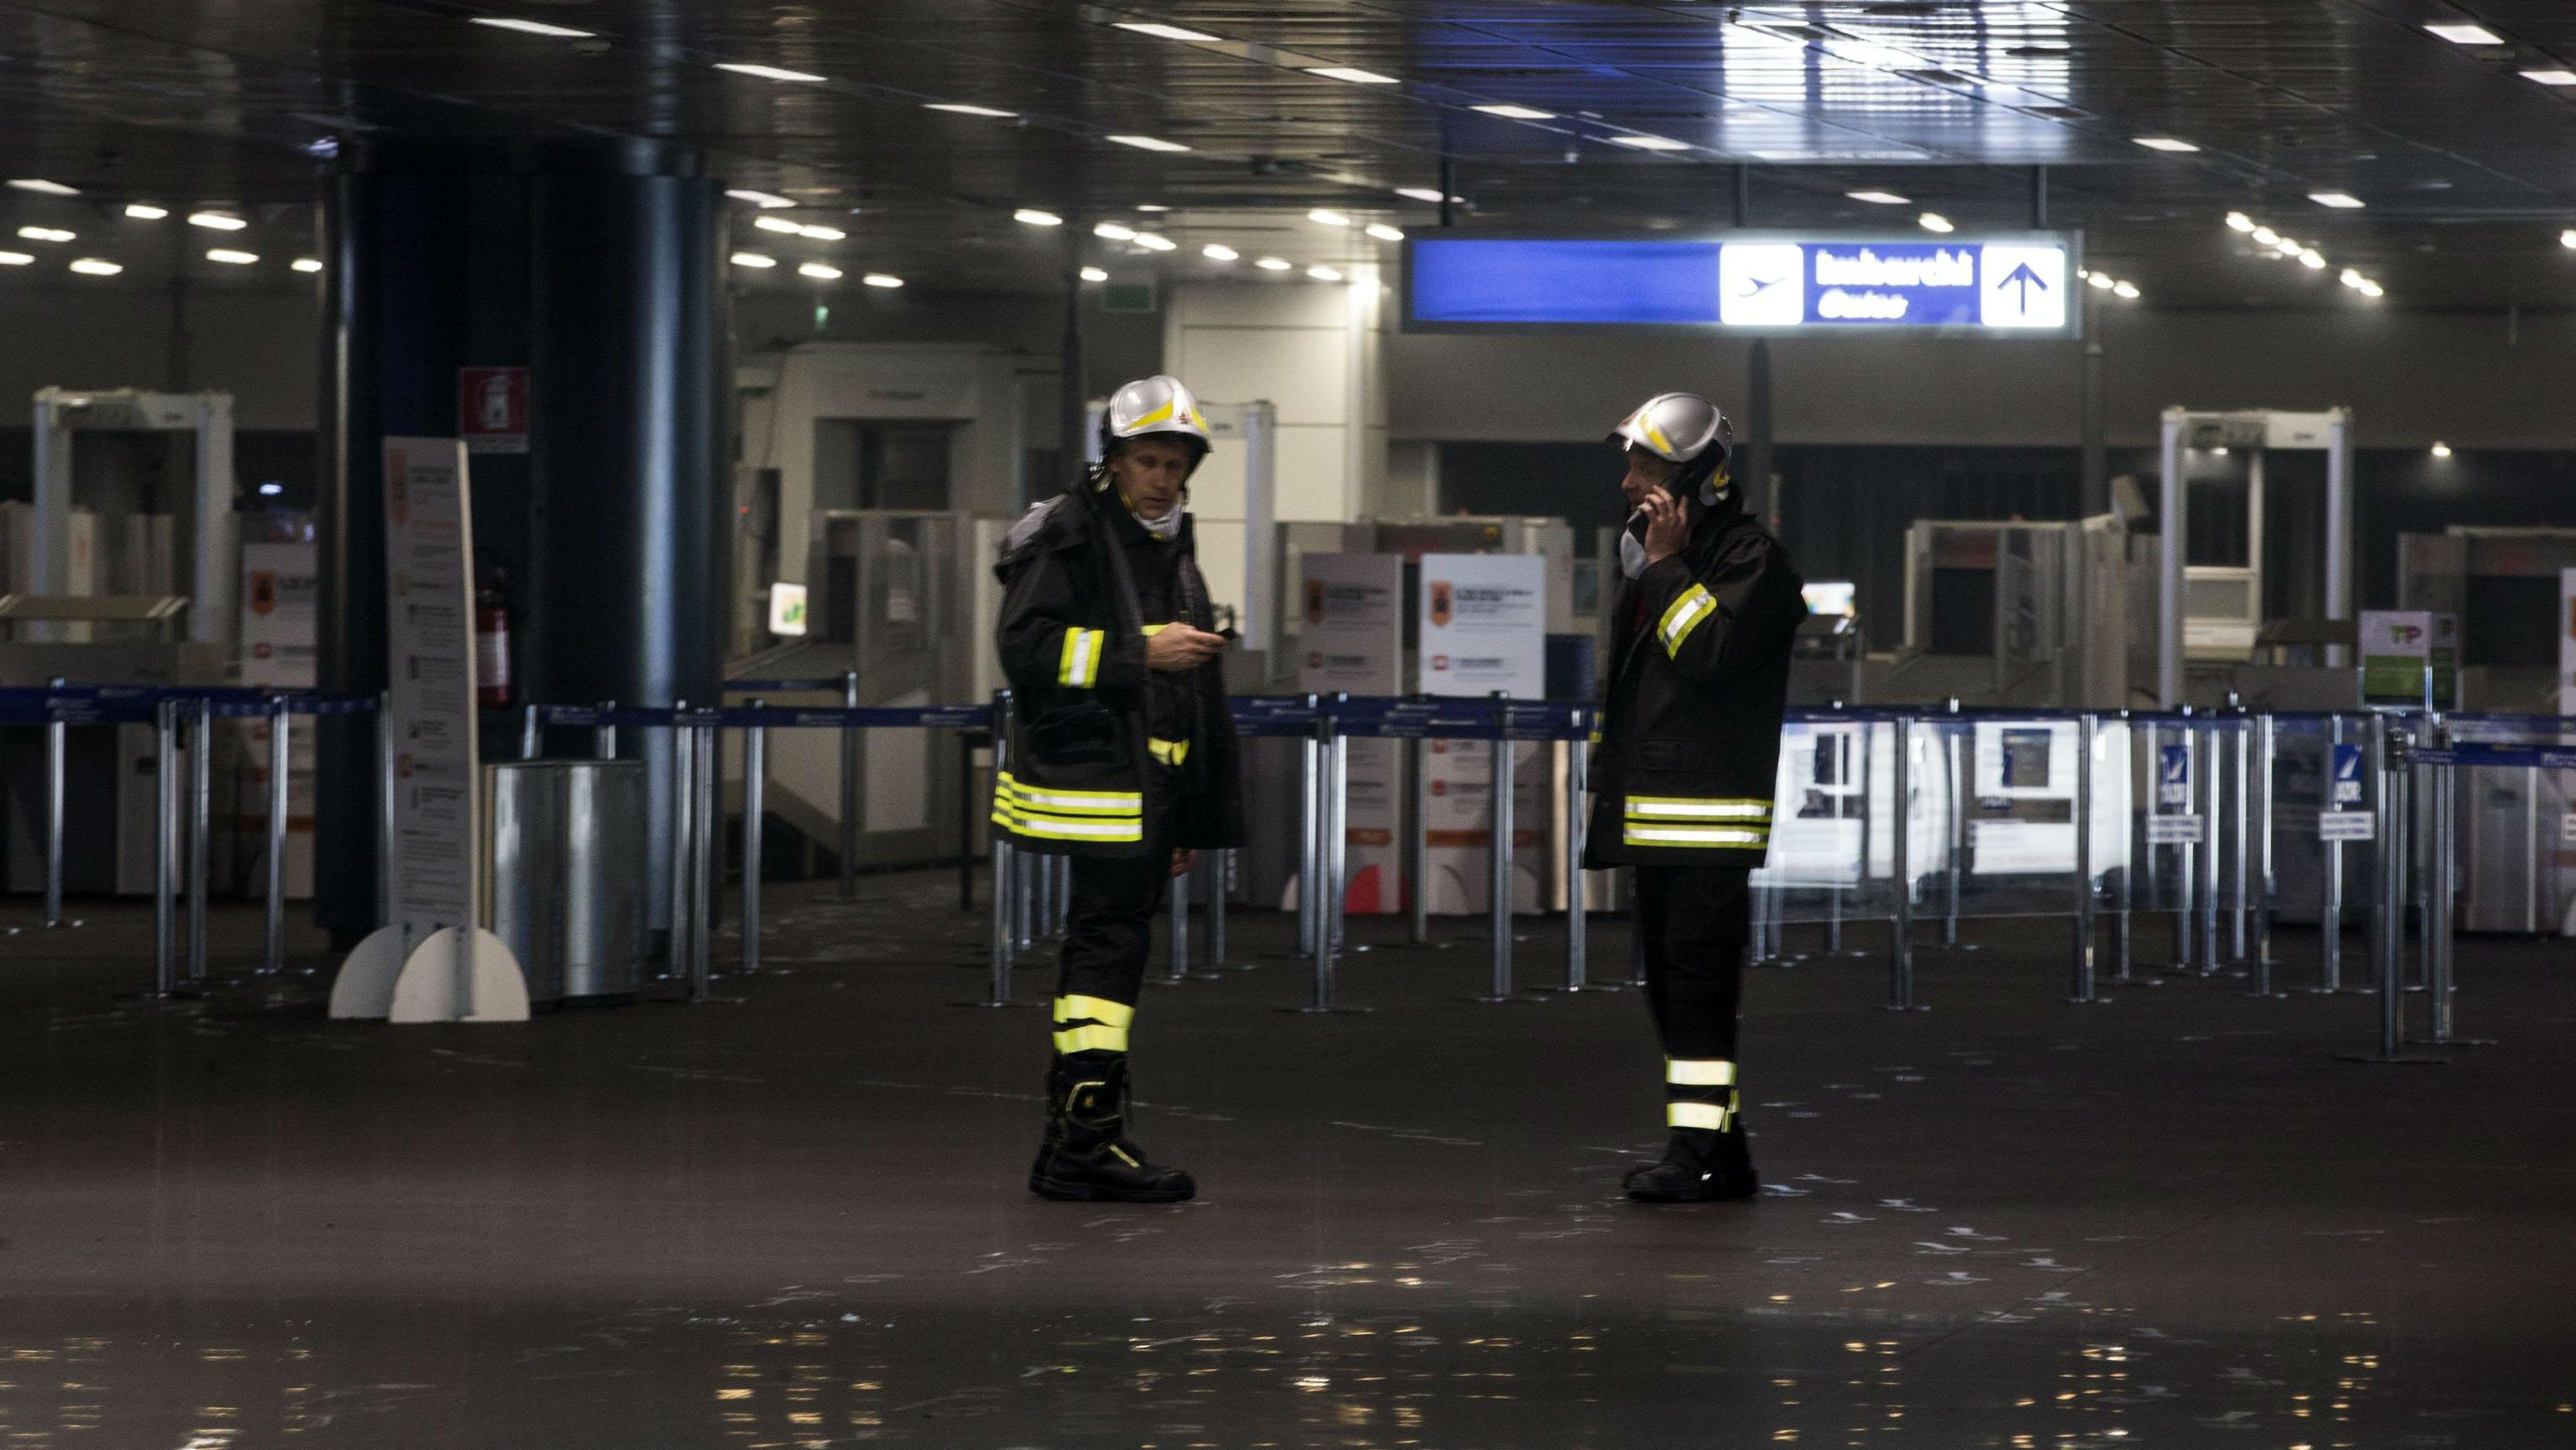 epa04736270 Fireman at work after the fire at the Leonardo Da Vinci's airport in Fiumicino, Rome, Italy, 07 May 2015. A fire broke out around midnight in the third terminal of the international airport Leonardo da Vinci. The domestic terminal was evacuated and firefighters are still working to extinguish the flames. EPA/MASSIMO PERCOSSI